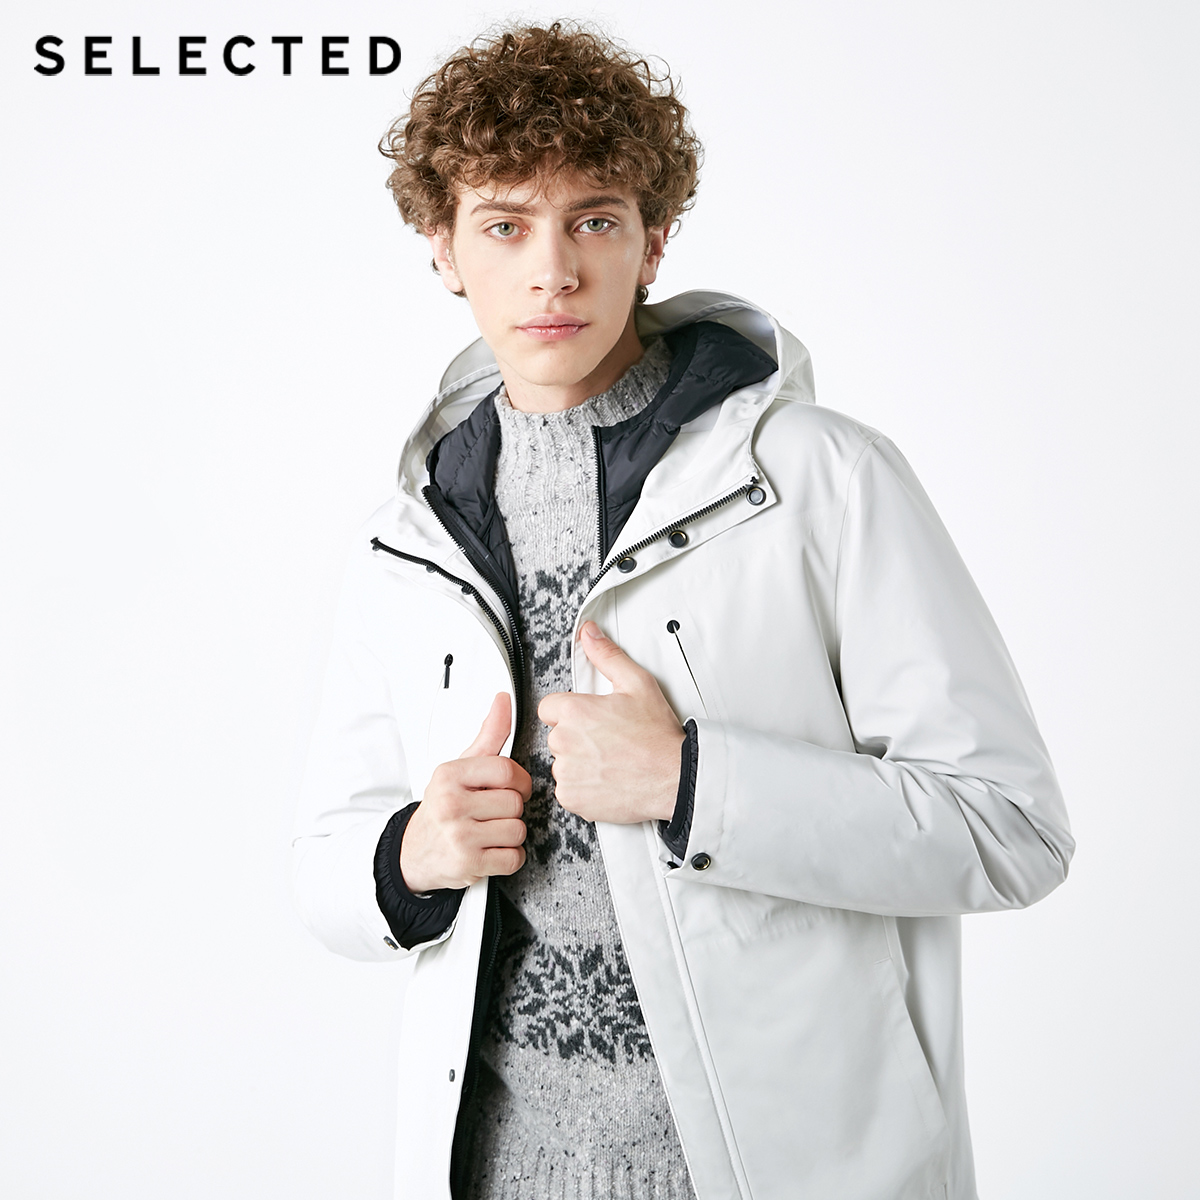 SELECTED Men's Down Jacket Two-sided Wear Male Removable Inner Gallbladder Cap Short Down Coat Suit Warm Clothes S | 418412536